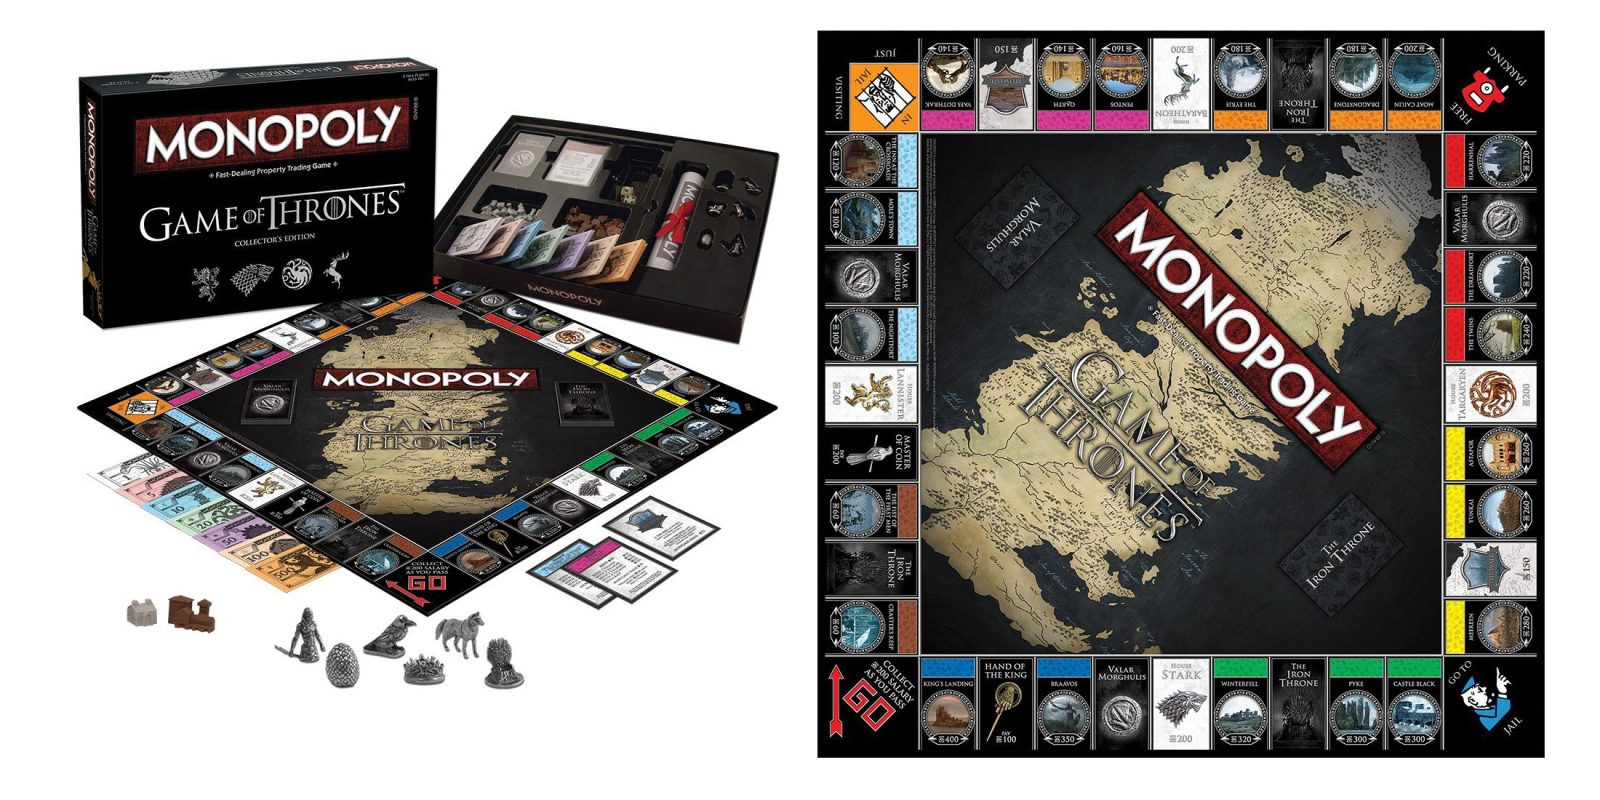 Monopoly Game of Thrones now $14 + more board games from $4 for today only